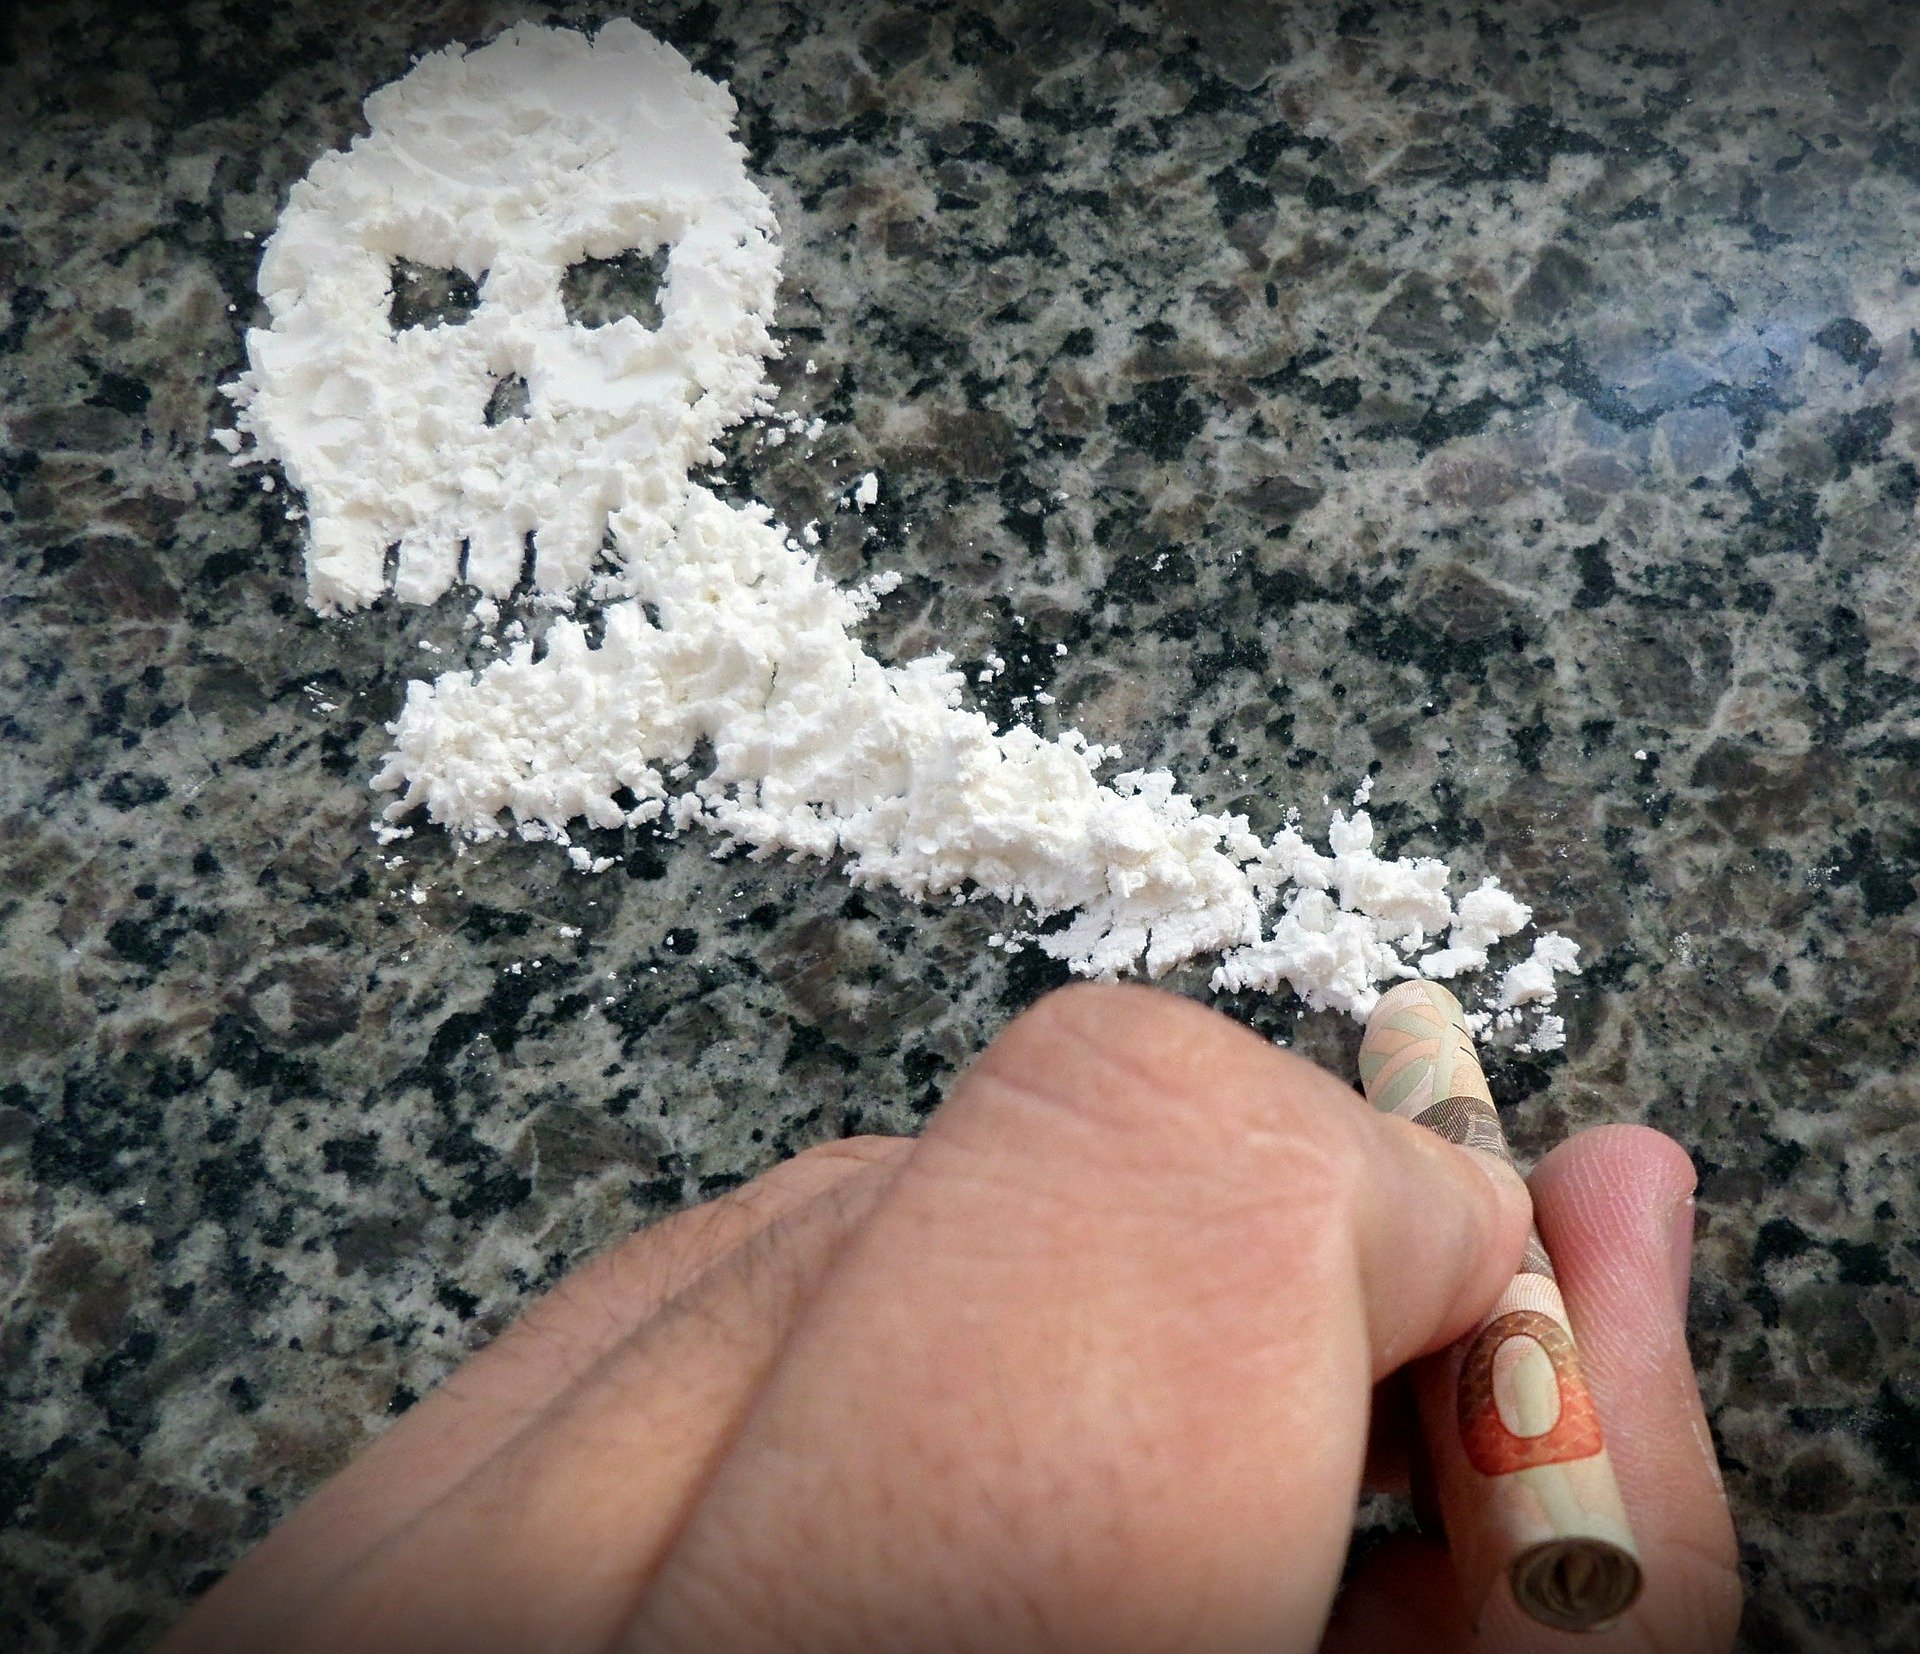 Cocaine Use in Men Over 40